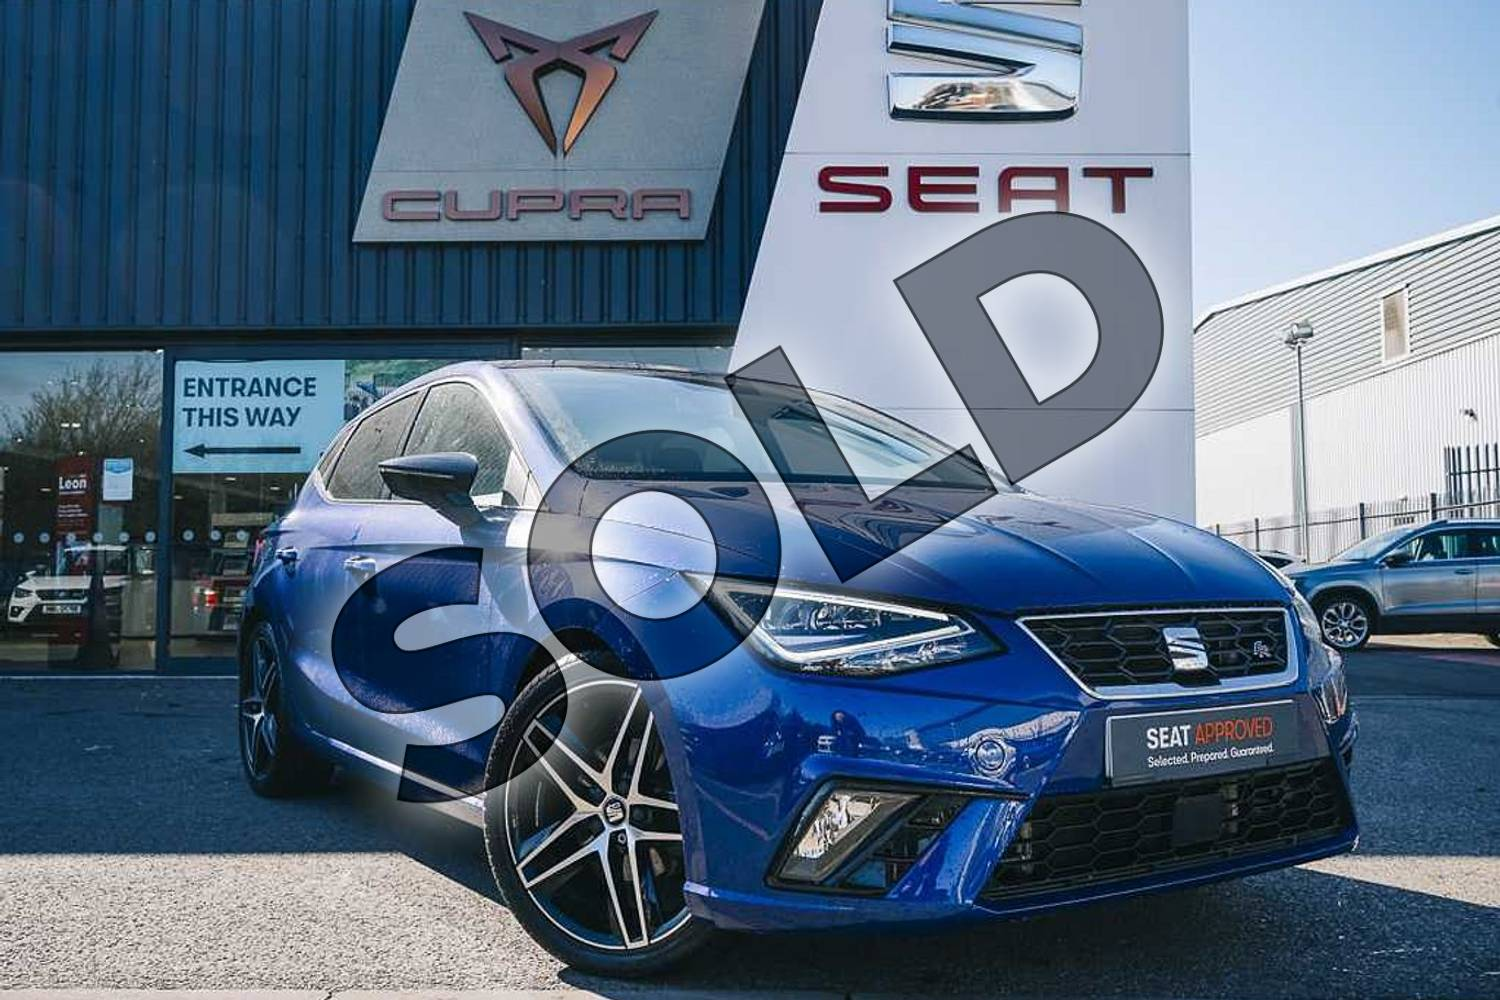 2018 SEAT Ibiza Hatchback 1.0 TSI 115 FR 5dr in Blue at Listers SEAT Coventry